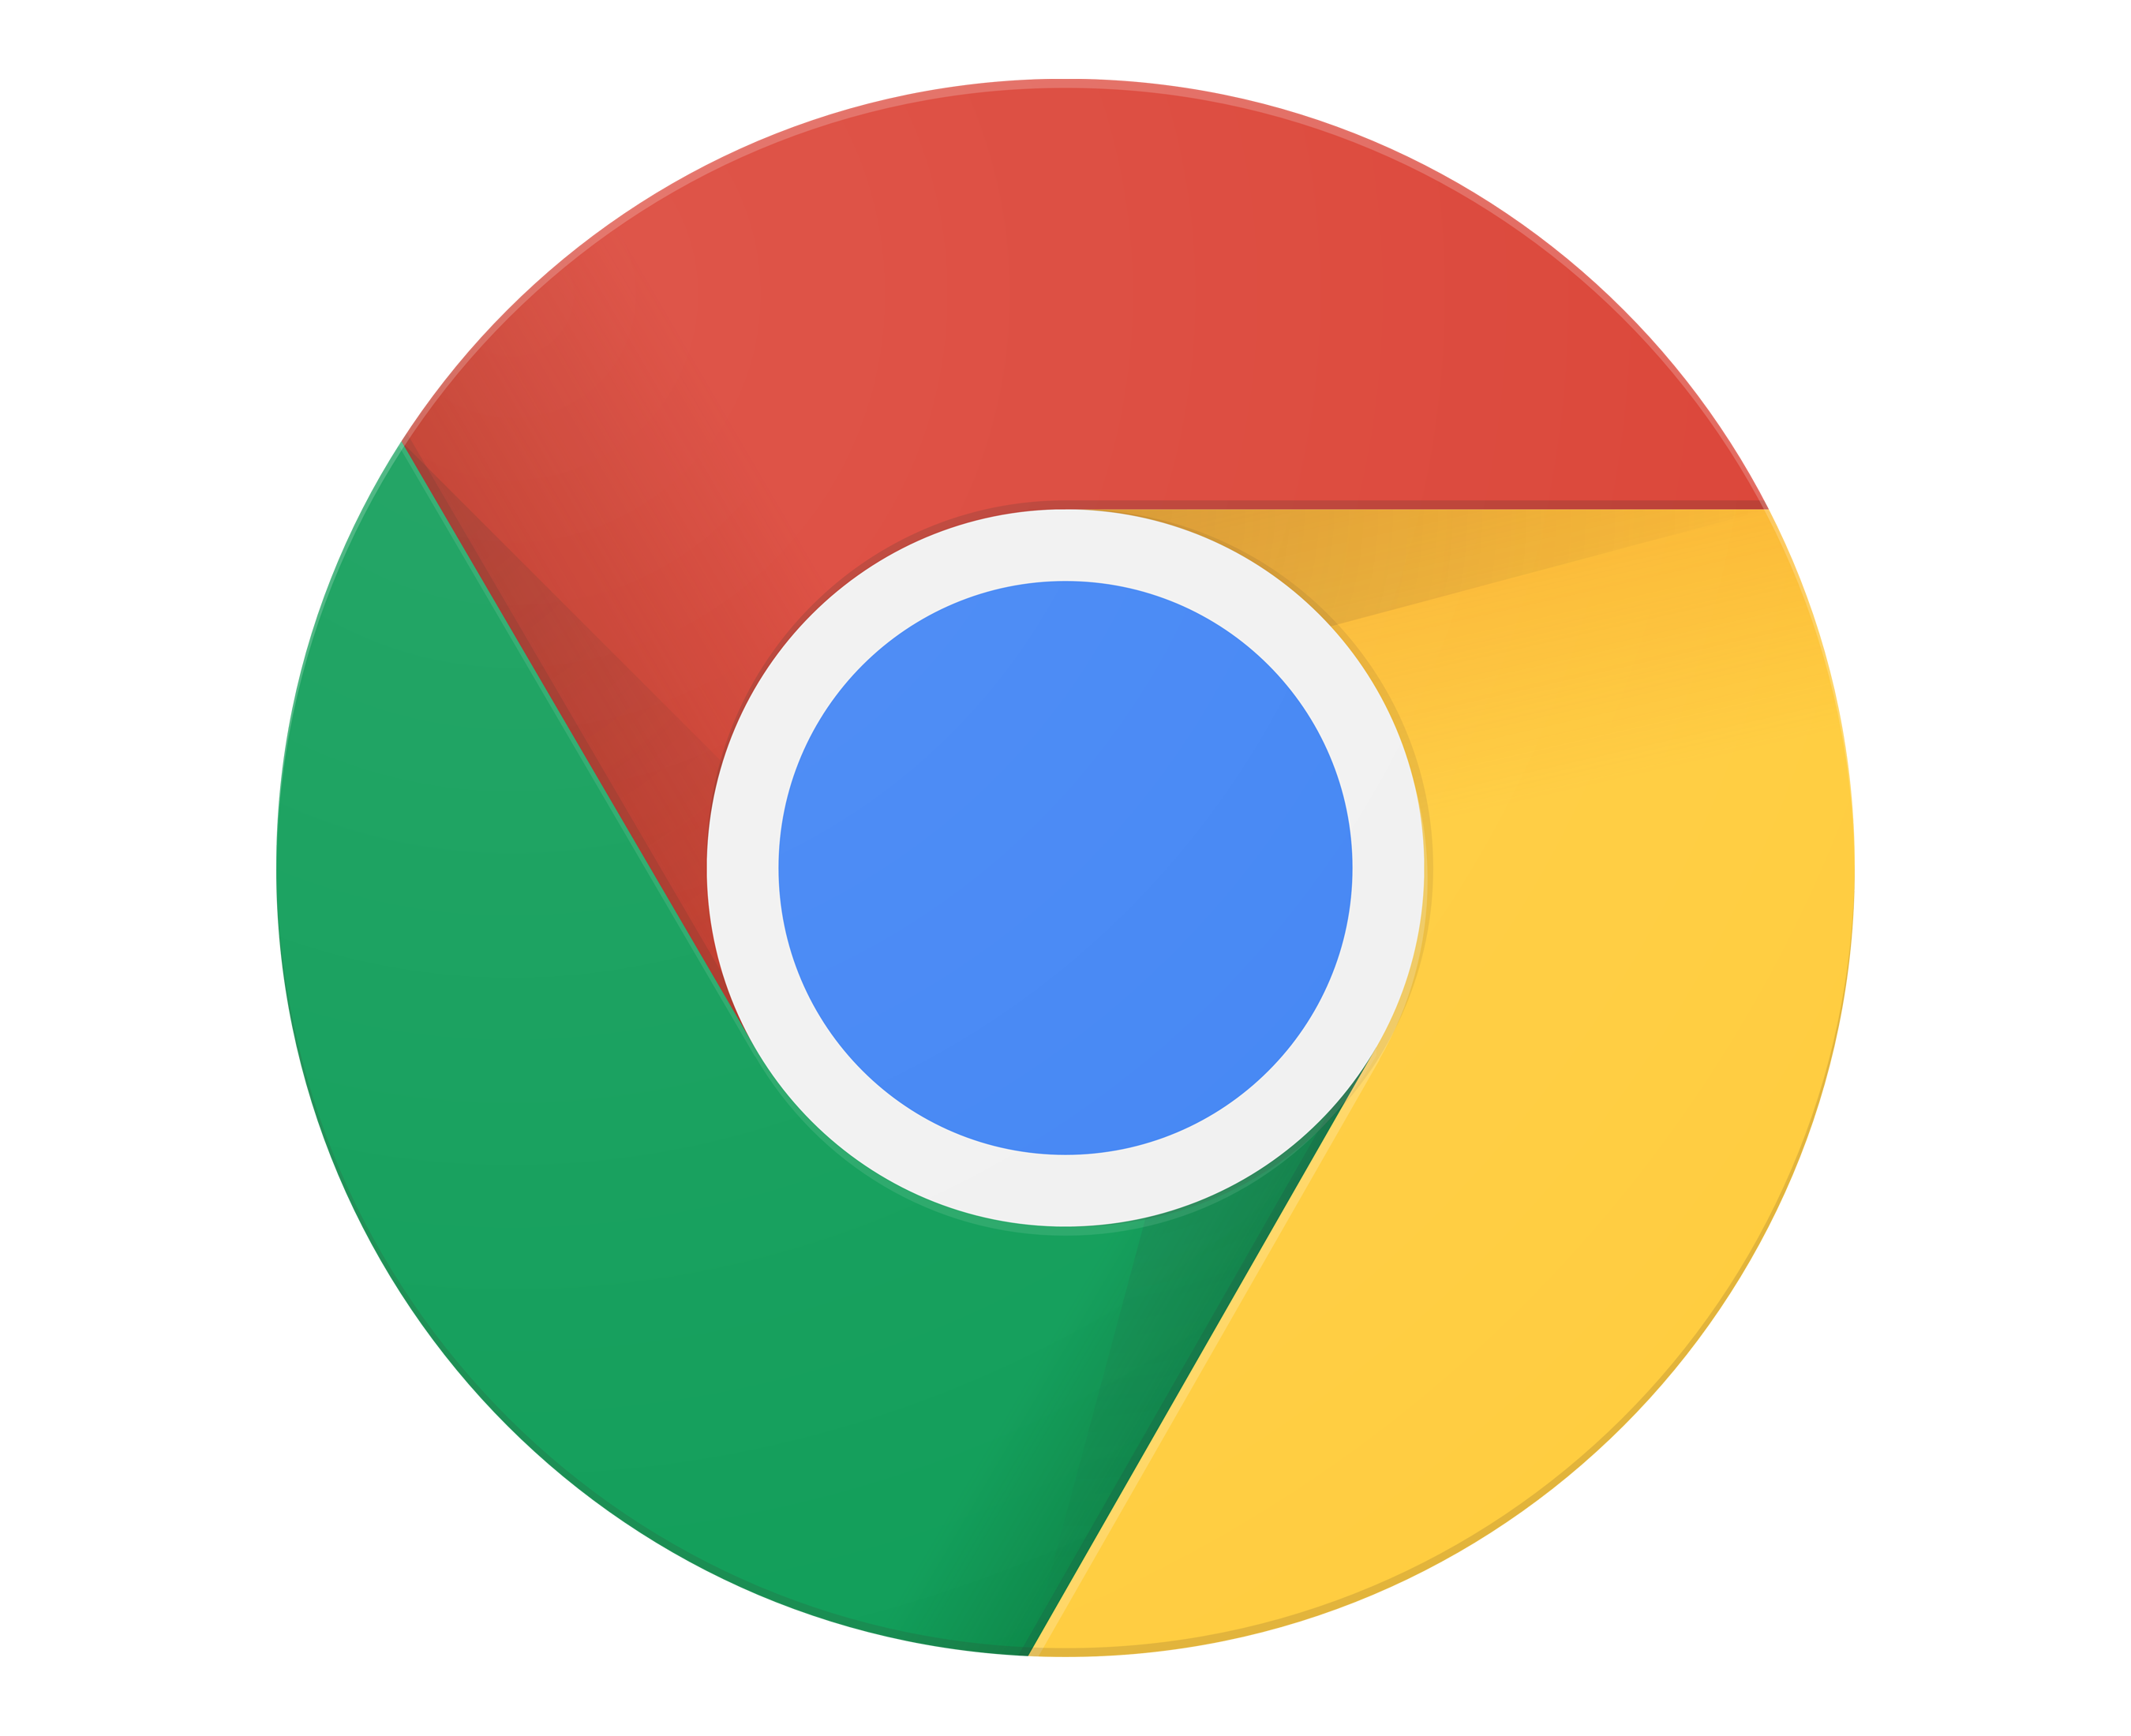 Meaning Chrome logo and symbol | history and evolution